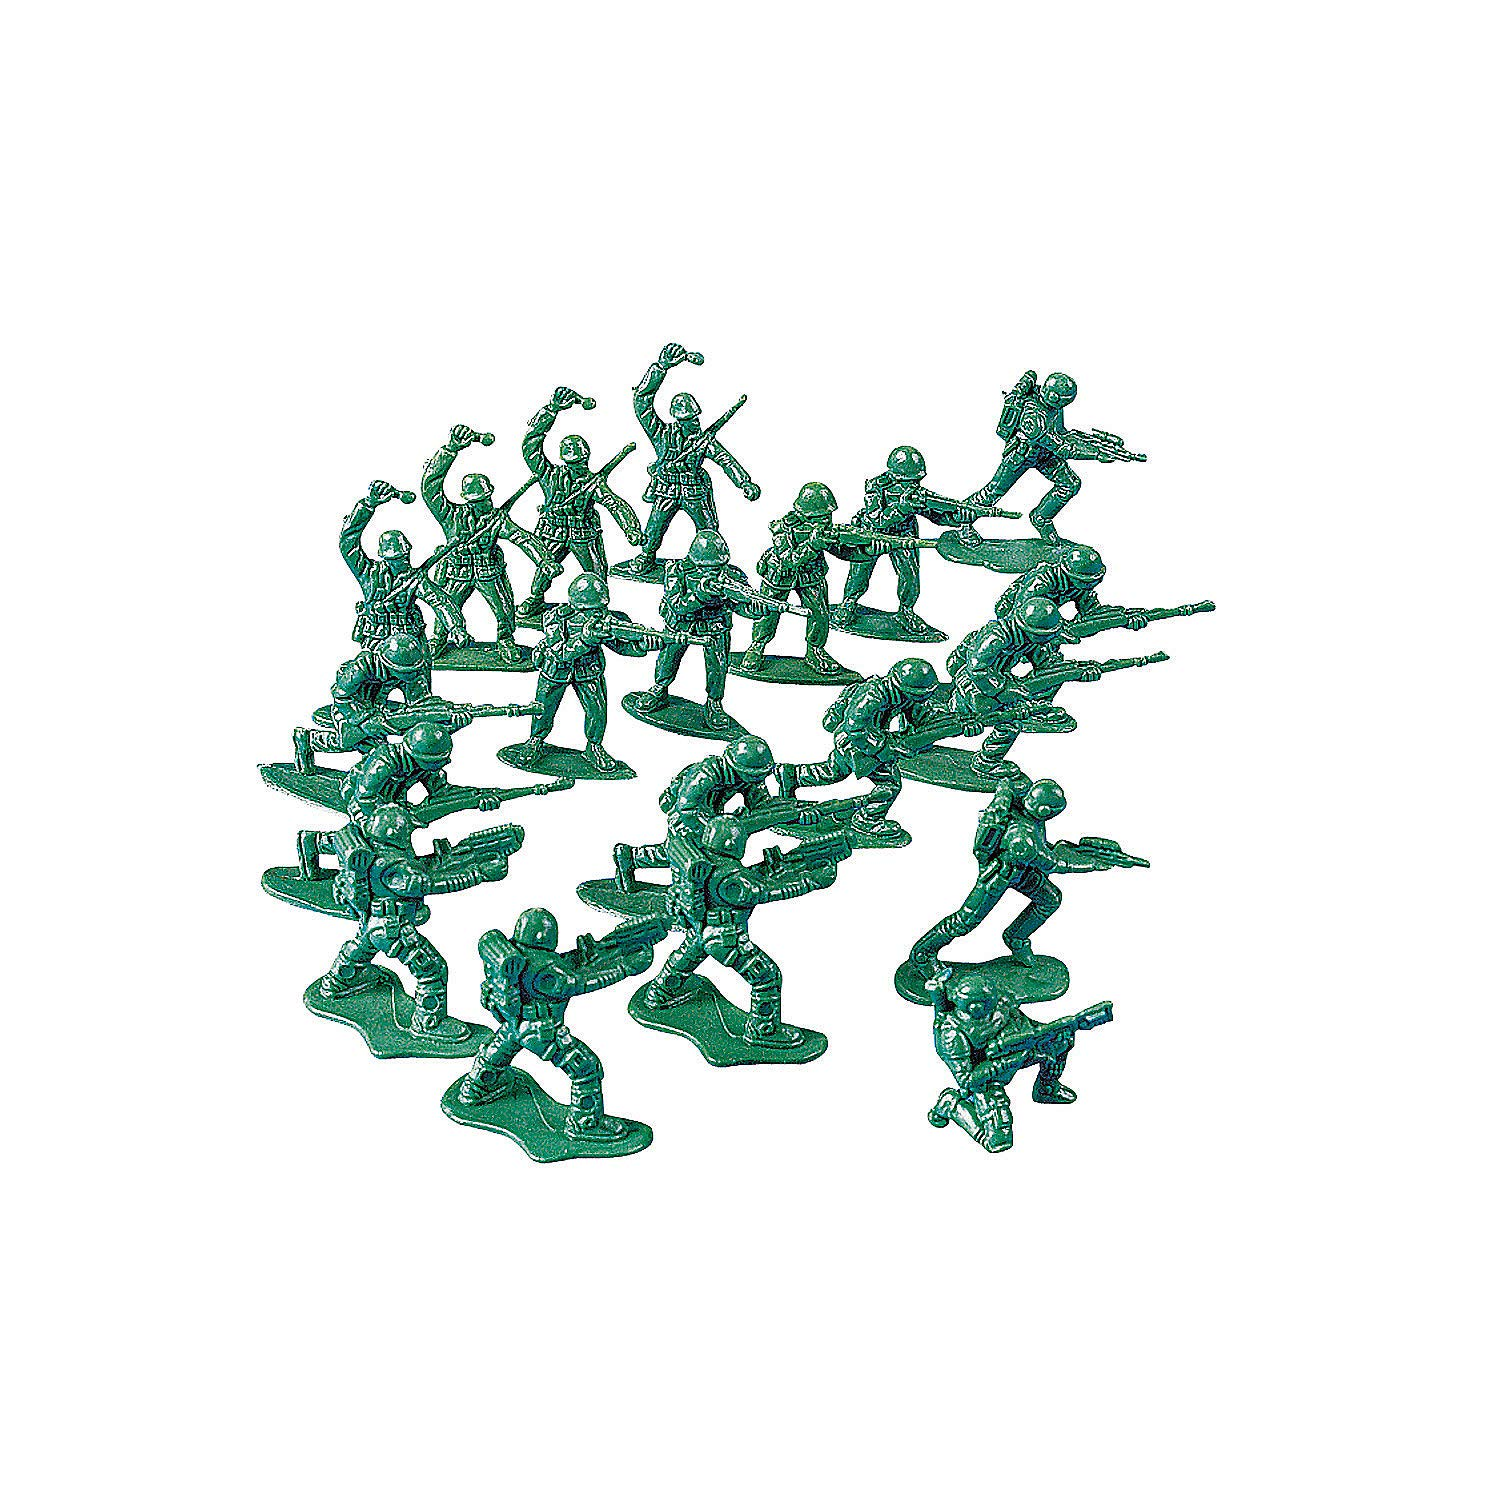 """1"""" MINI SOLDIERS - Toys - 144 Pieces"""